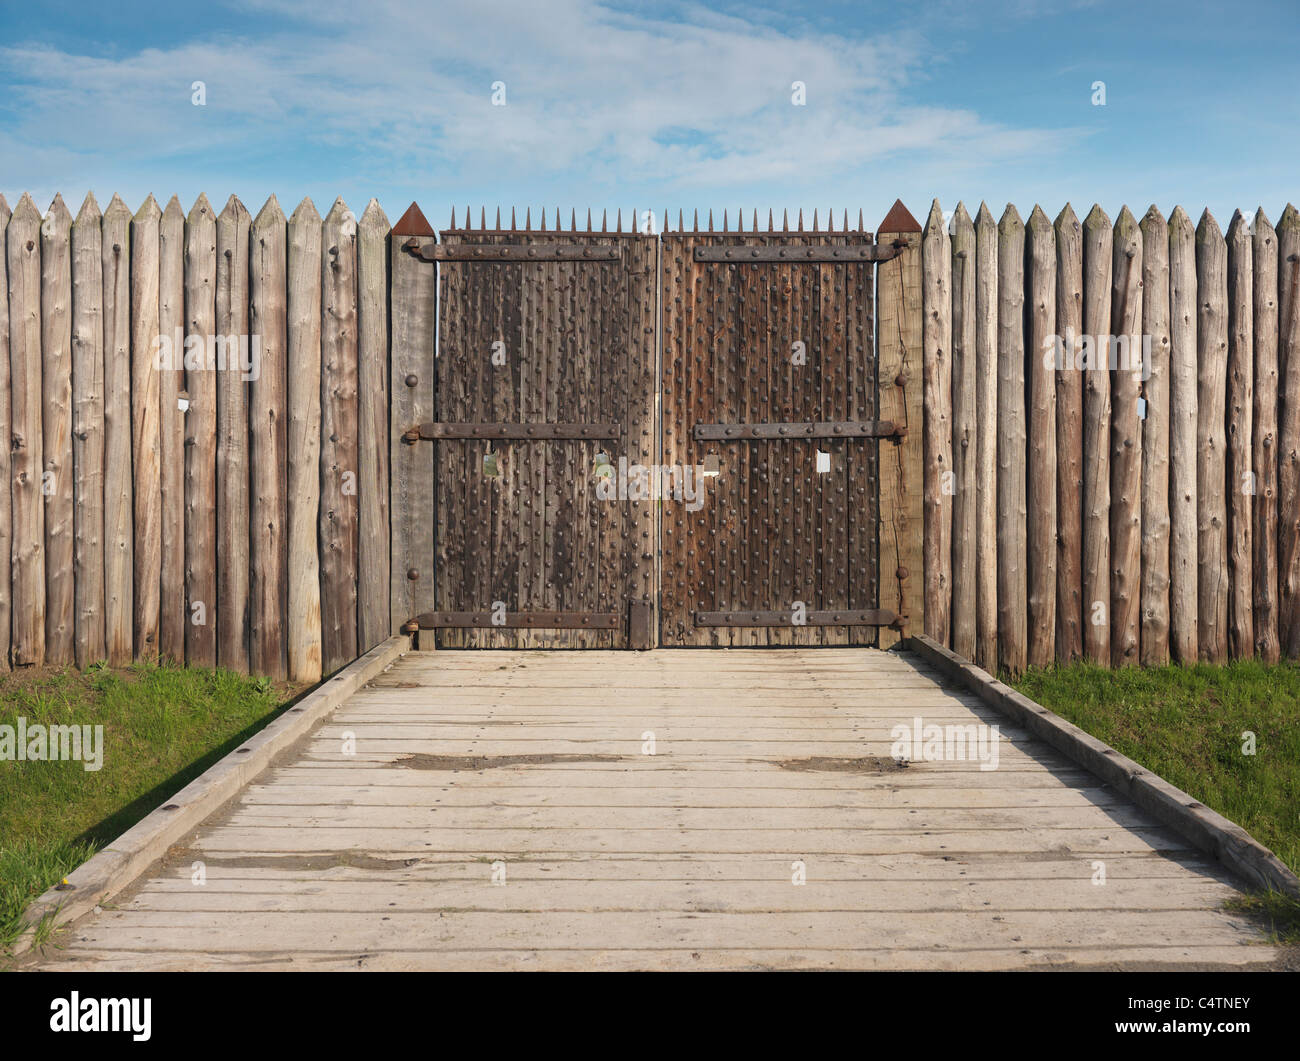 Gates of Fort George, National Historic Site at Niagara-on-the-Lake, Ontario, Canada. - Stock Image